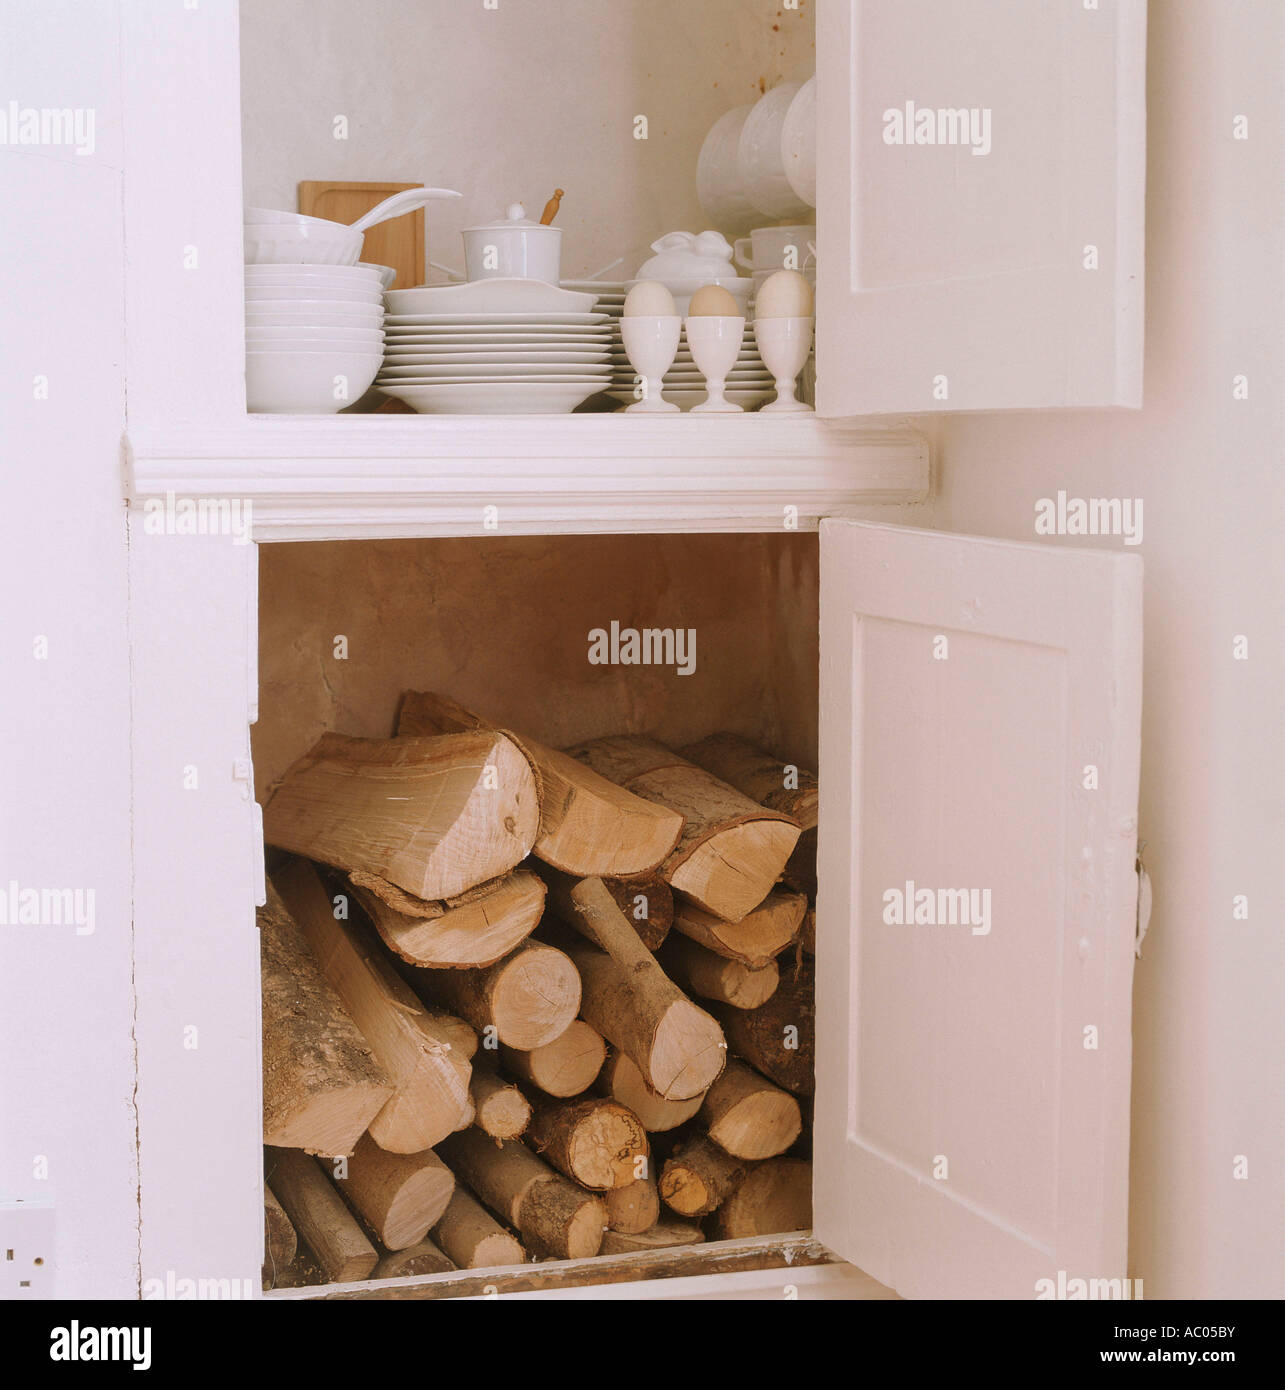 Open Kitchen Storage Cupboards Containing Fire Wood And Crockery   Stock  Image